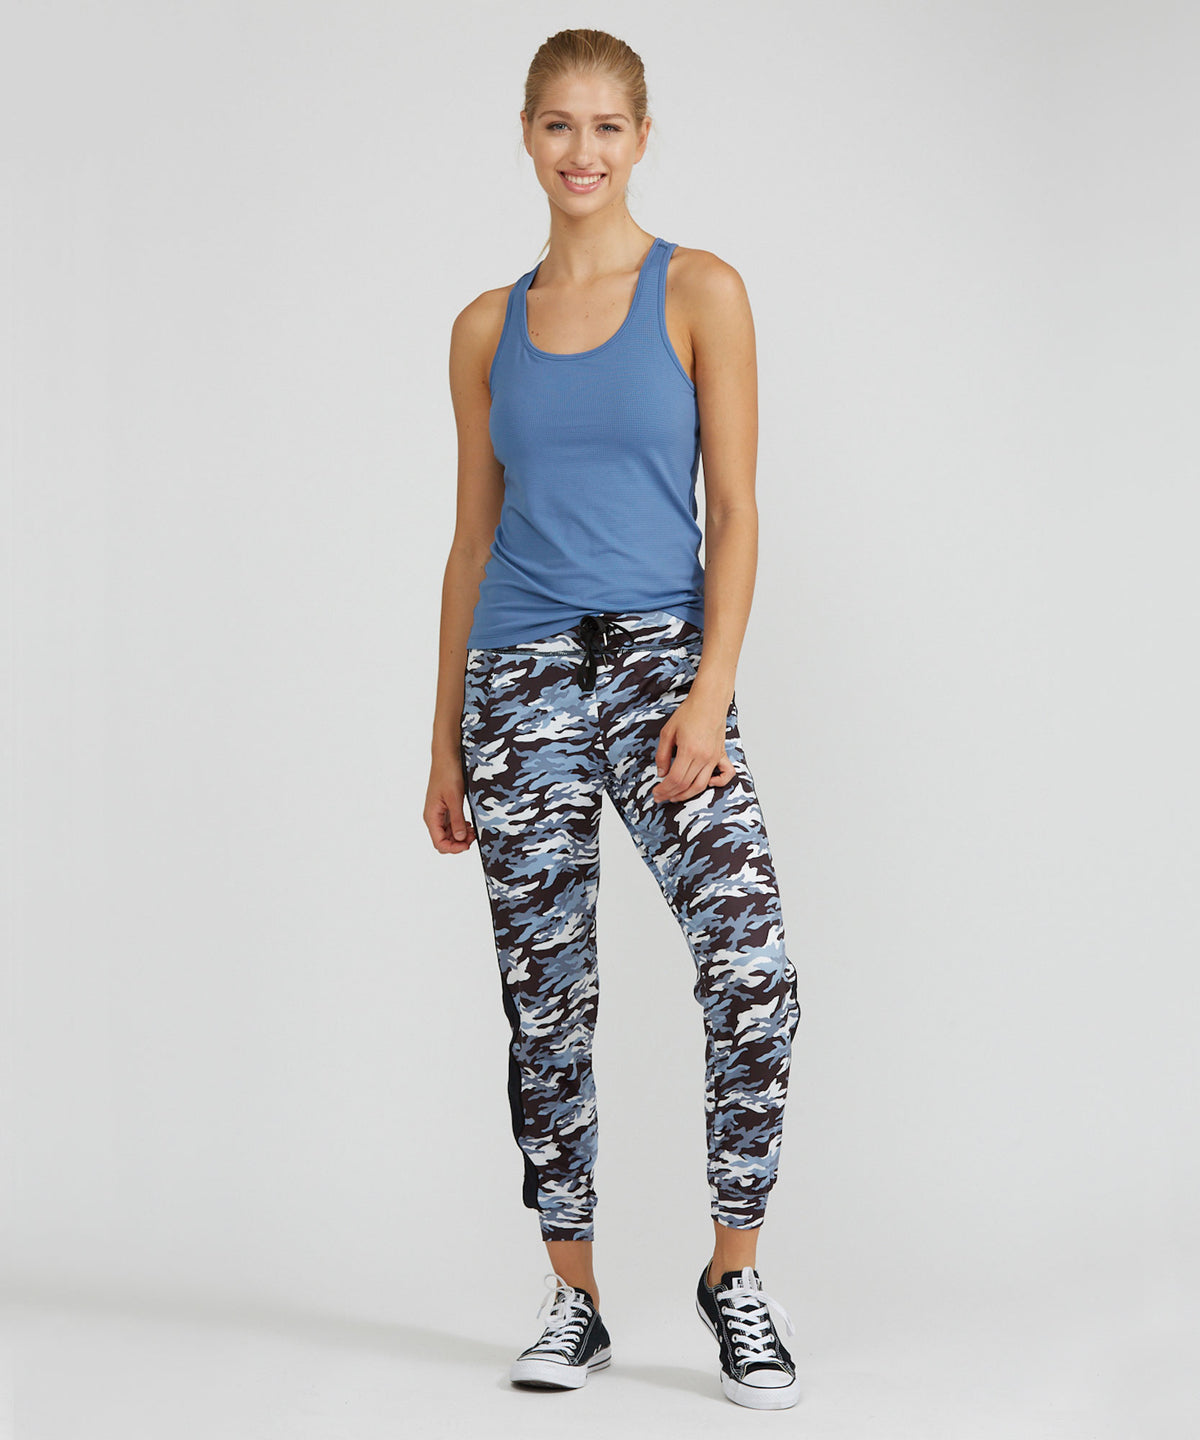 Urban Track Pant - Patton Patton Urban Track Pant - Women's Activewear Pant by PRISMSPORT